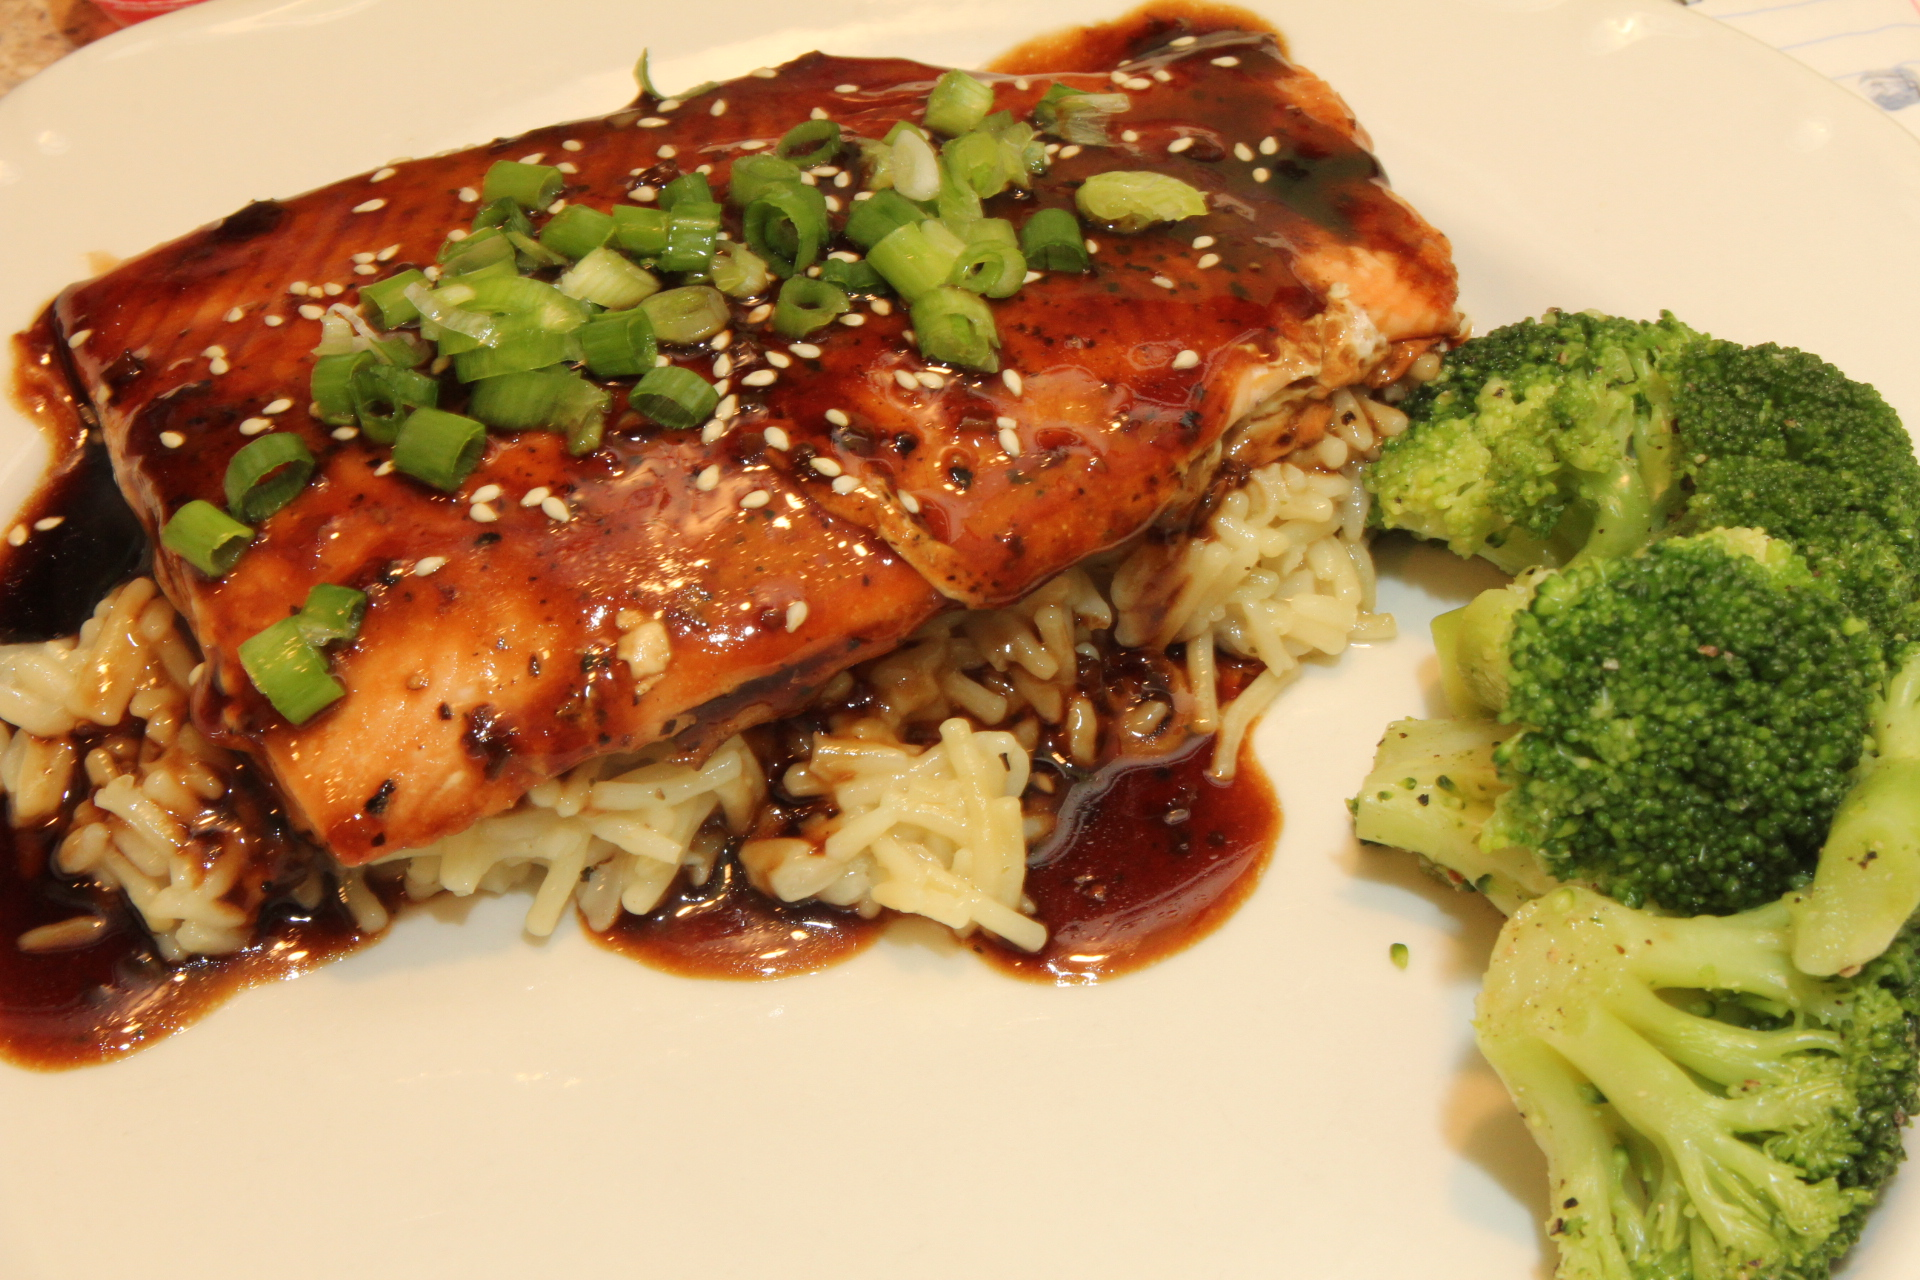 ... off with toasted sesame seeds and green onions Balsamic Glazed Salmon